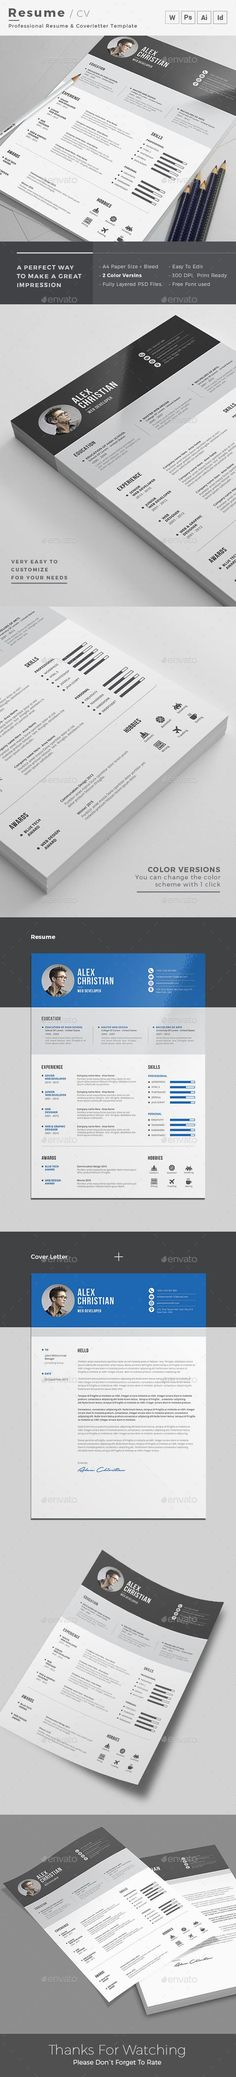 Infographic Resume Resume words, Professional resume and Cv template - how to make resume on word